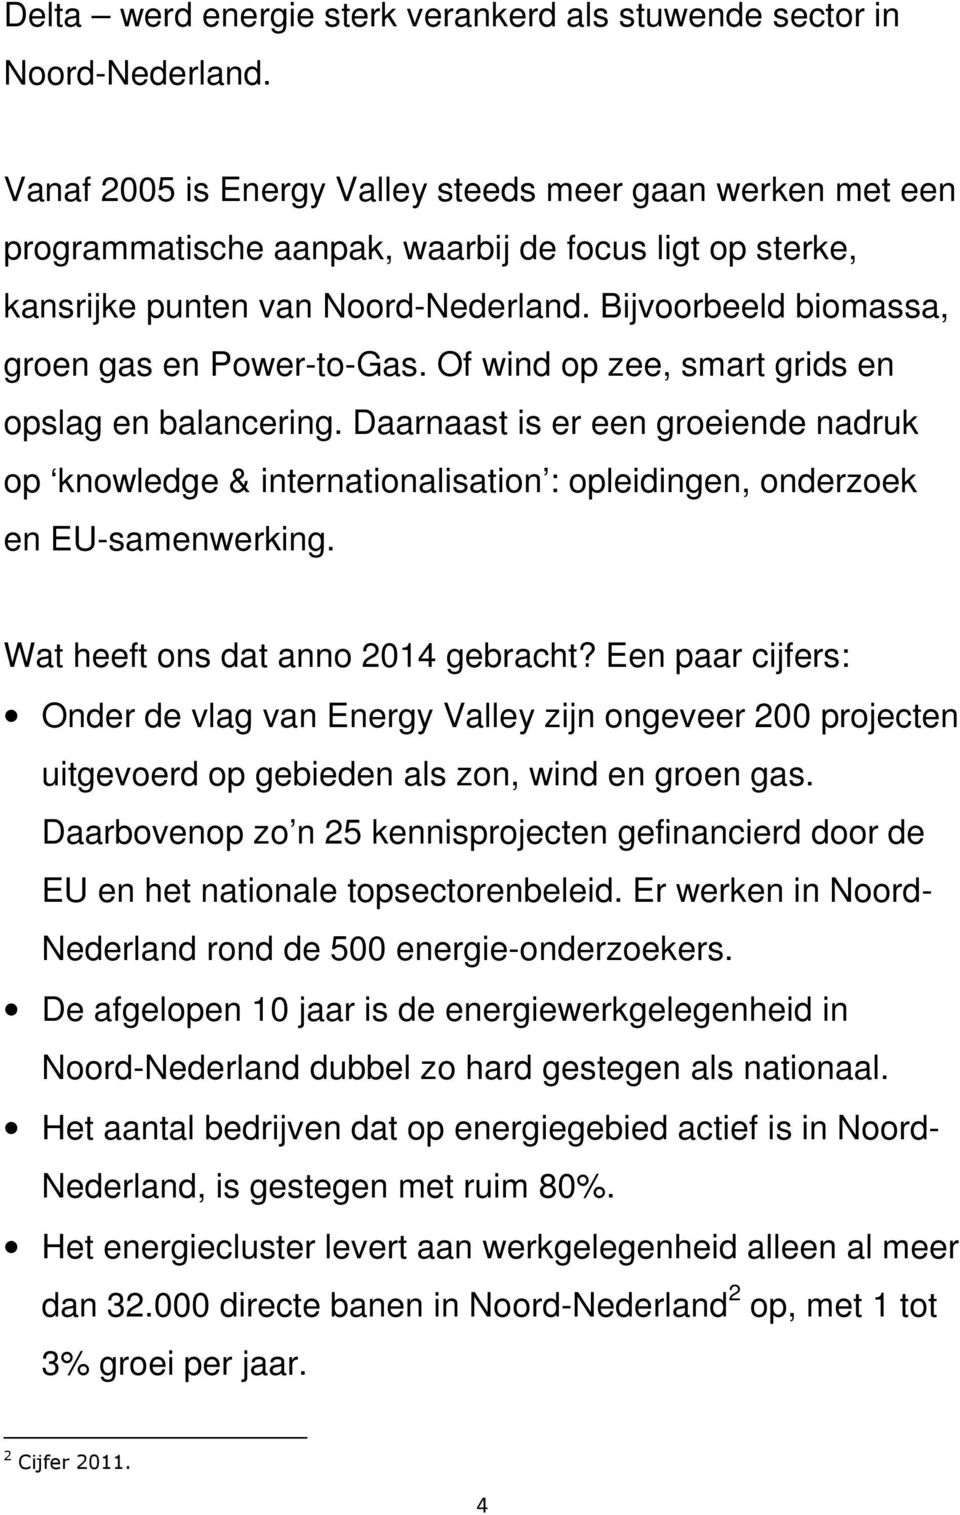 Bijvoorbeeld biomassa, groen gas en Power-to-Gas. Of wind op zee, smart grids en opslag en balancering.